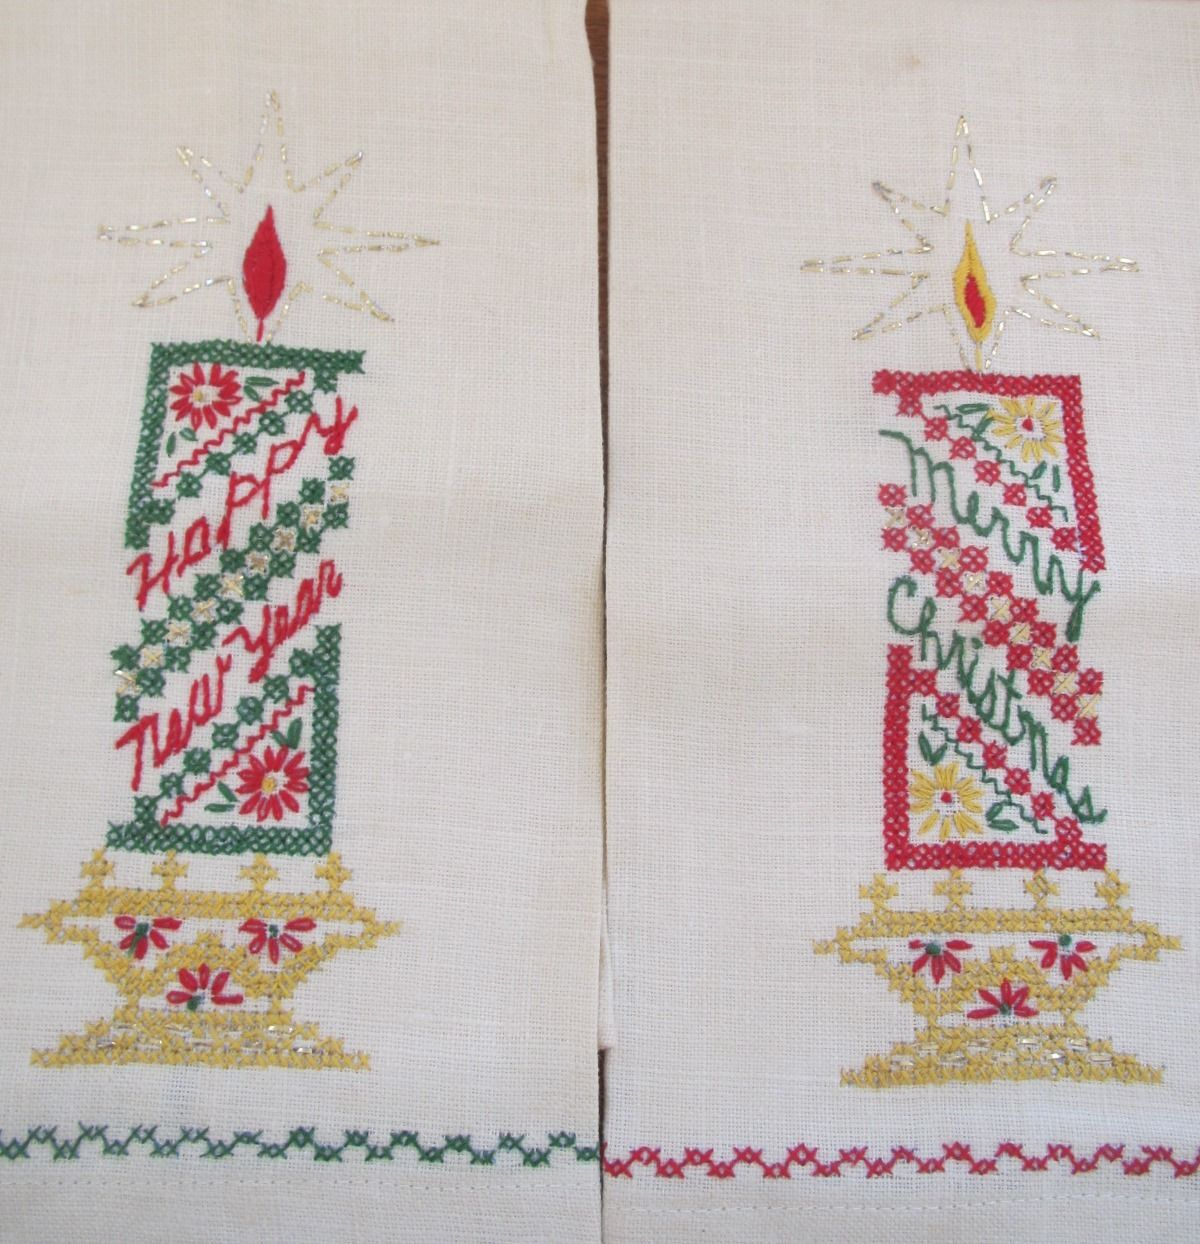 2 Vintage TOWELS Linen Merry Christmas Bath Hand Towel Set Hand Embroidered (L&T-244)